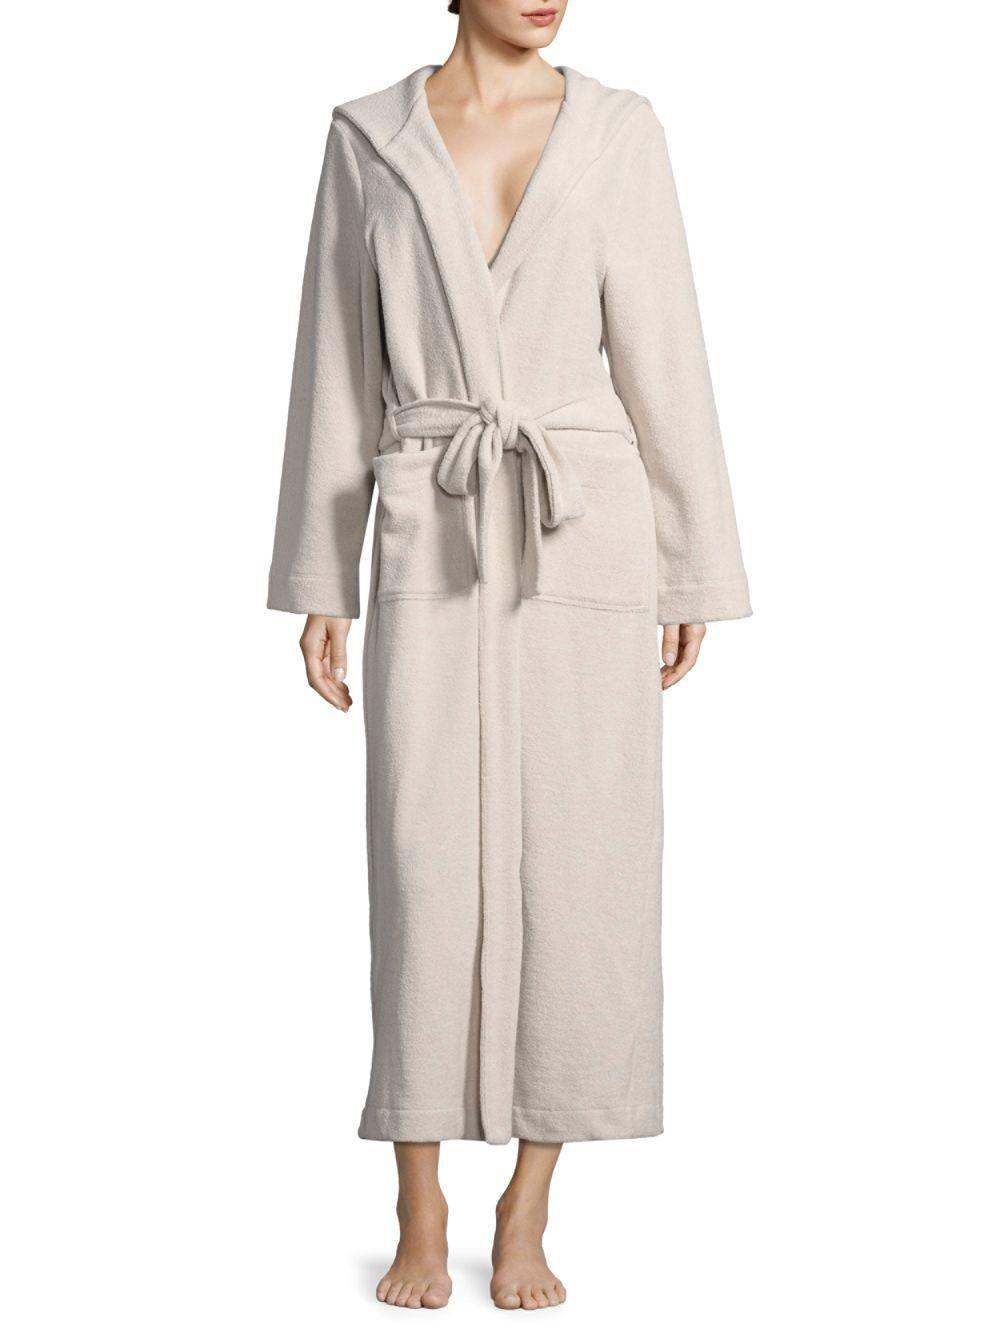 8759312f81 Lyst - Hanro Women s Terry Long Hooded Robe - White - Size Xs